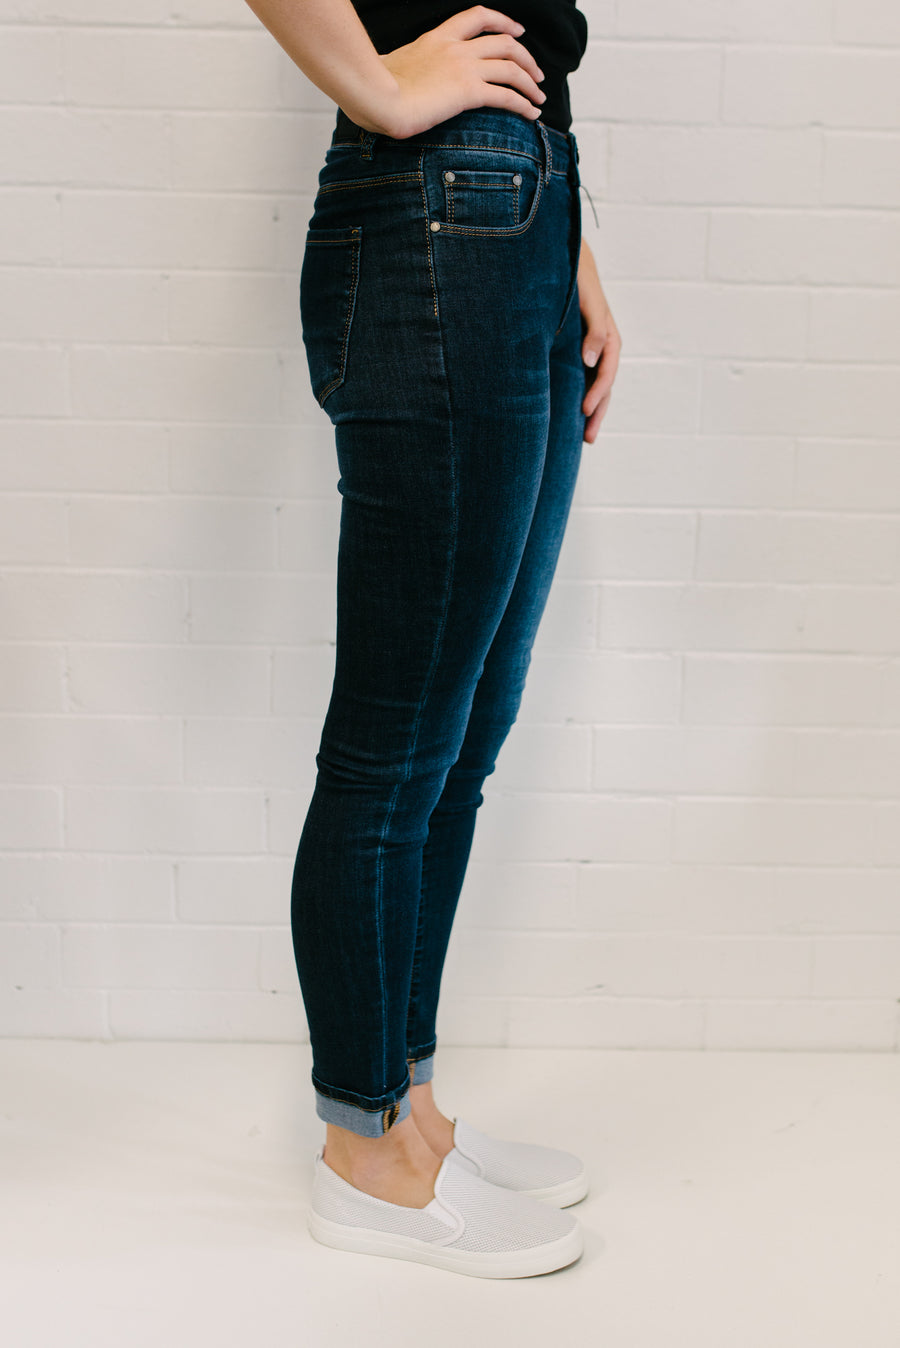 Blue Fade Denim Women | Lyn Rose Boutique